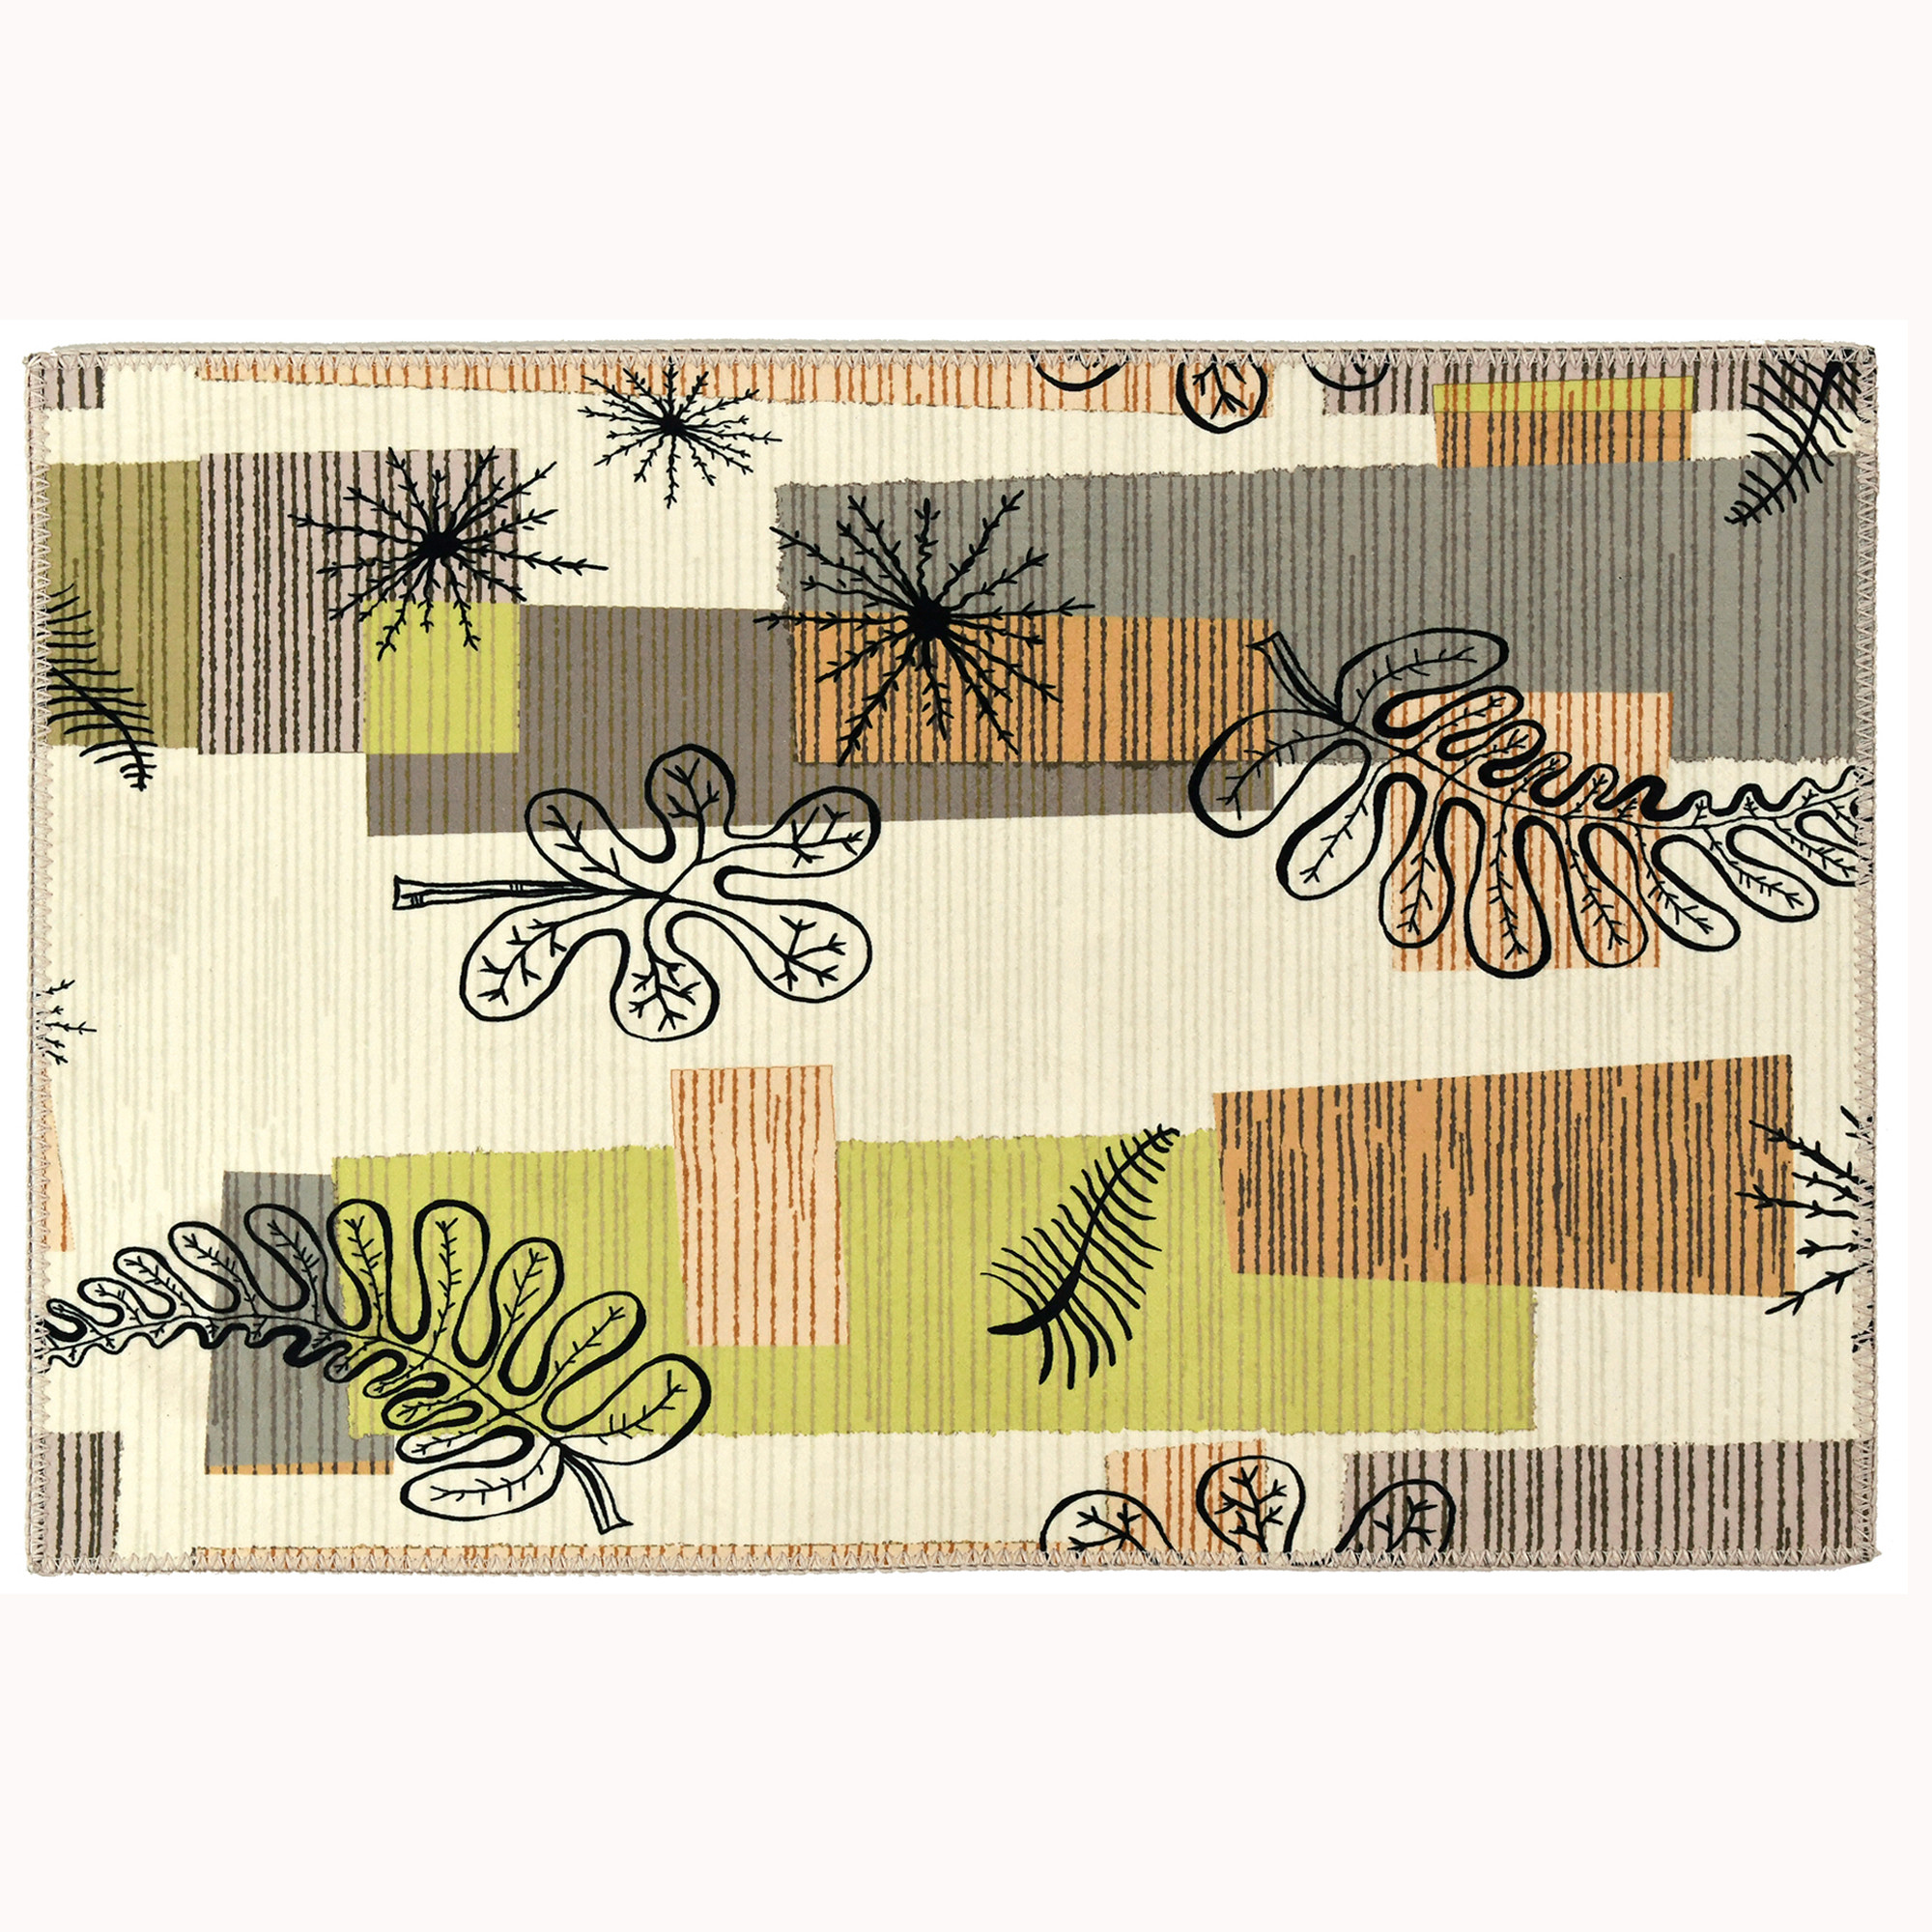 Neutral colors are printed on this Homefires by Jellybean® poly-suede floor cloth. The suede feel of this polyester is delivered in a design by Elizabeth Hale. The machine washable floor cloth is thin enough to rest under table and chairs while increasing mobility. Four sizes from accent to area are available.